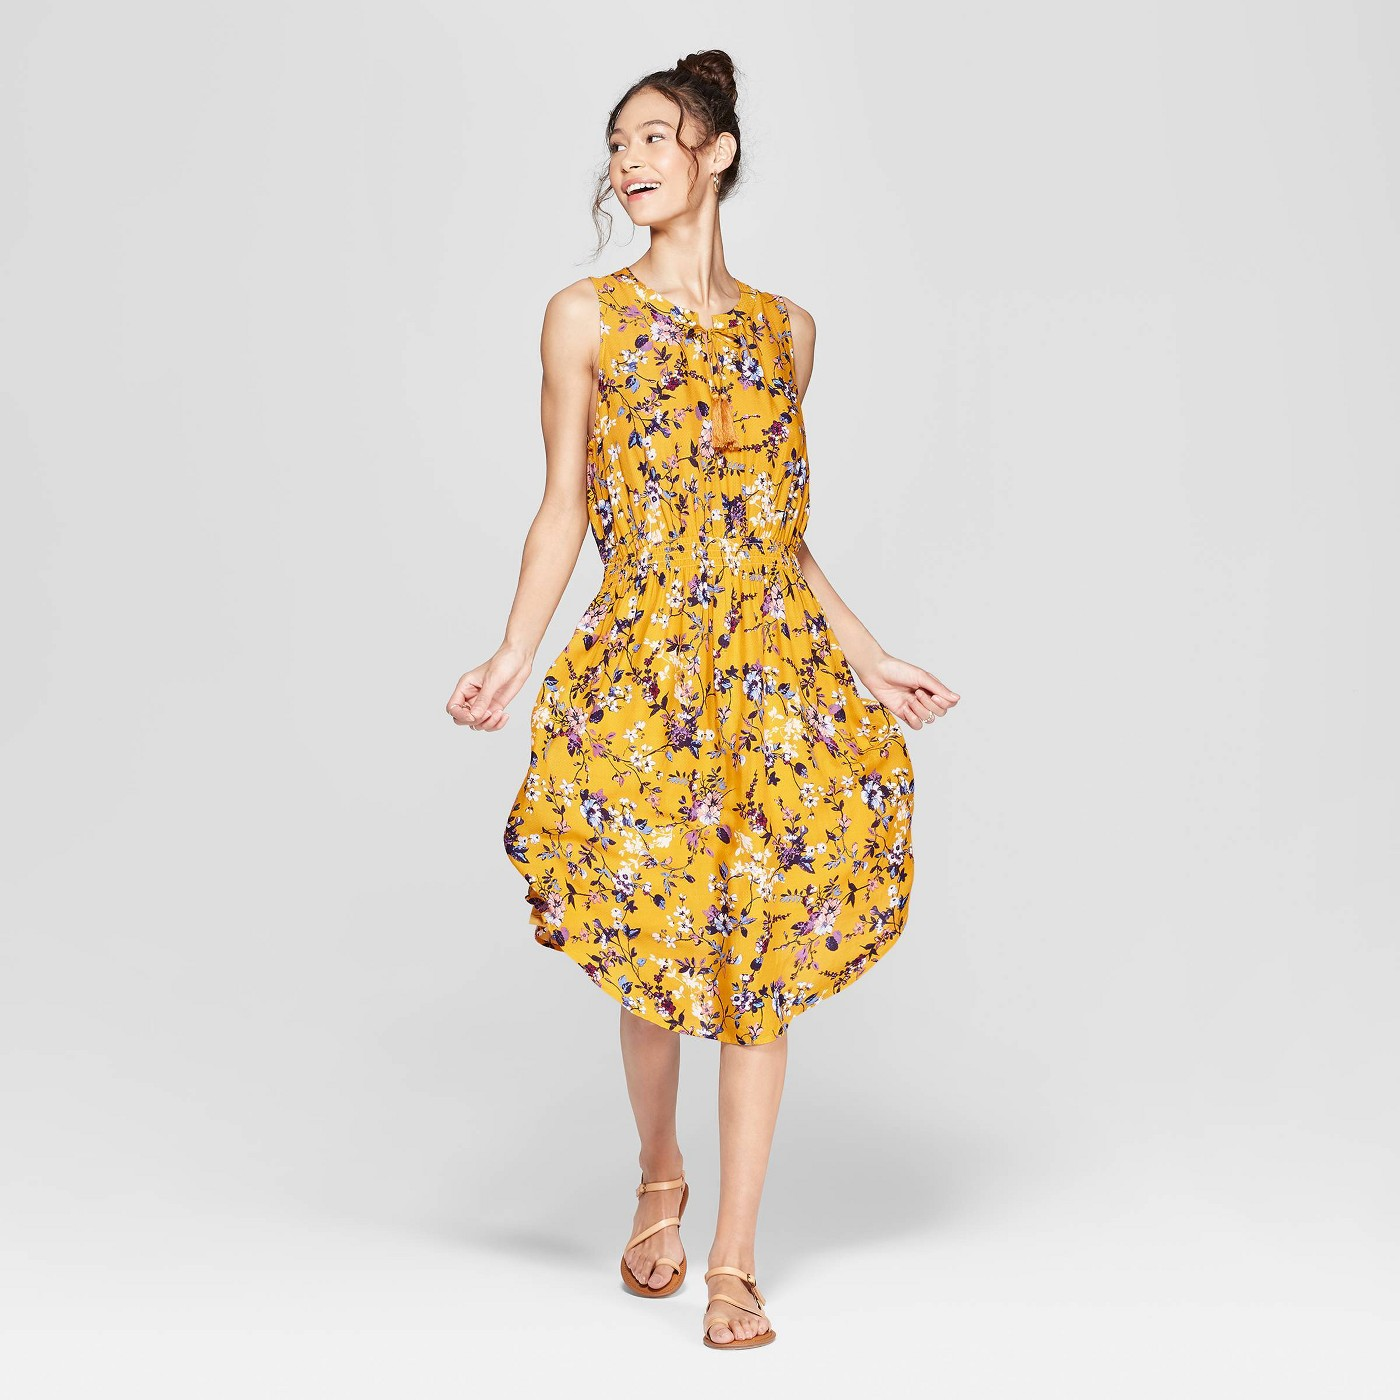 Women's Floral Print Sleeveless V-Neck Cinched Waist Midi Dress - Xhilaration™ Mustard Yellow - image 1 of 2